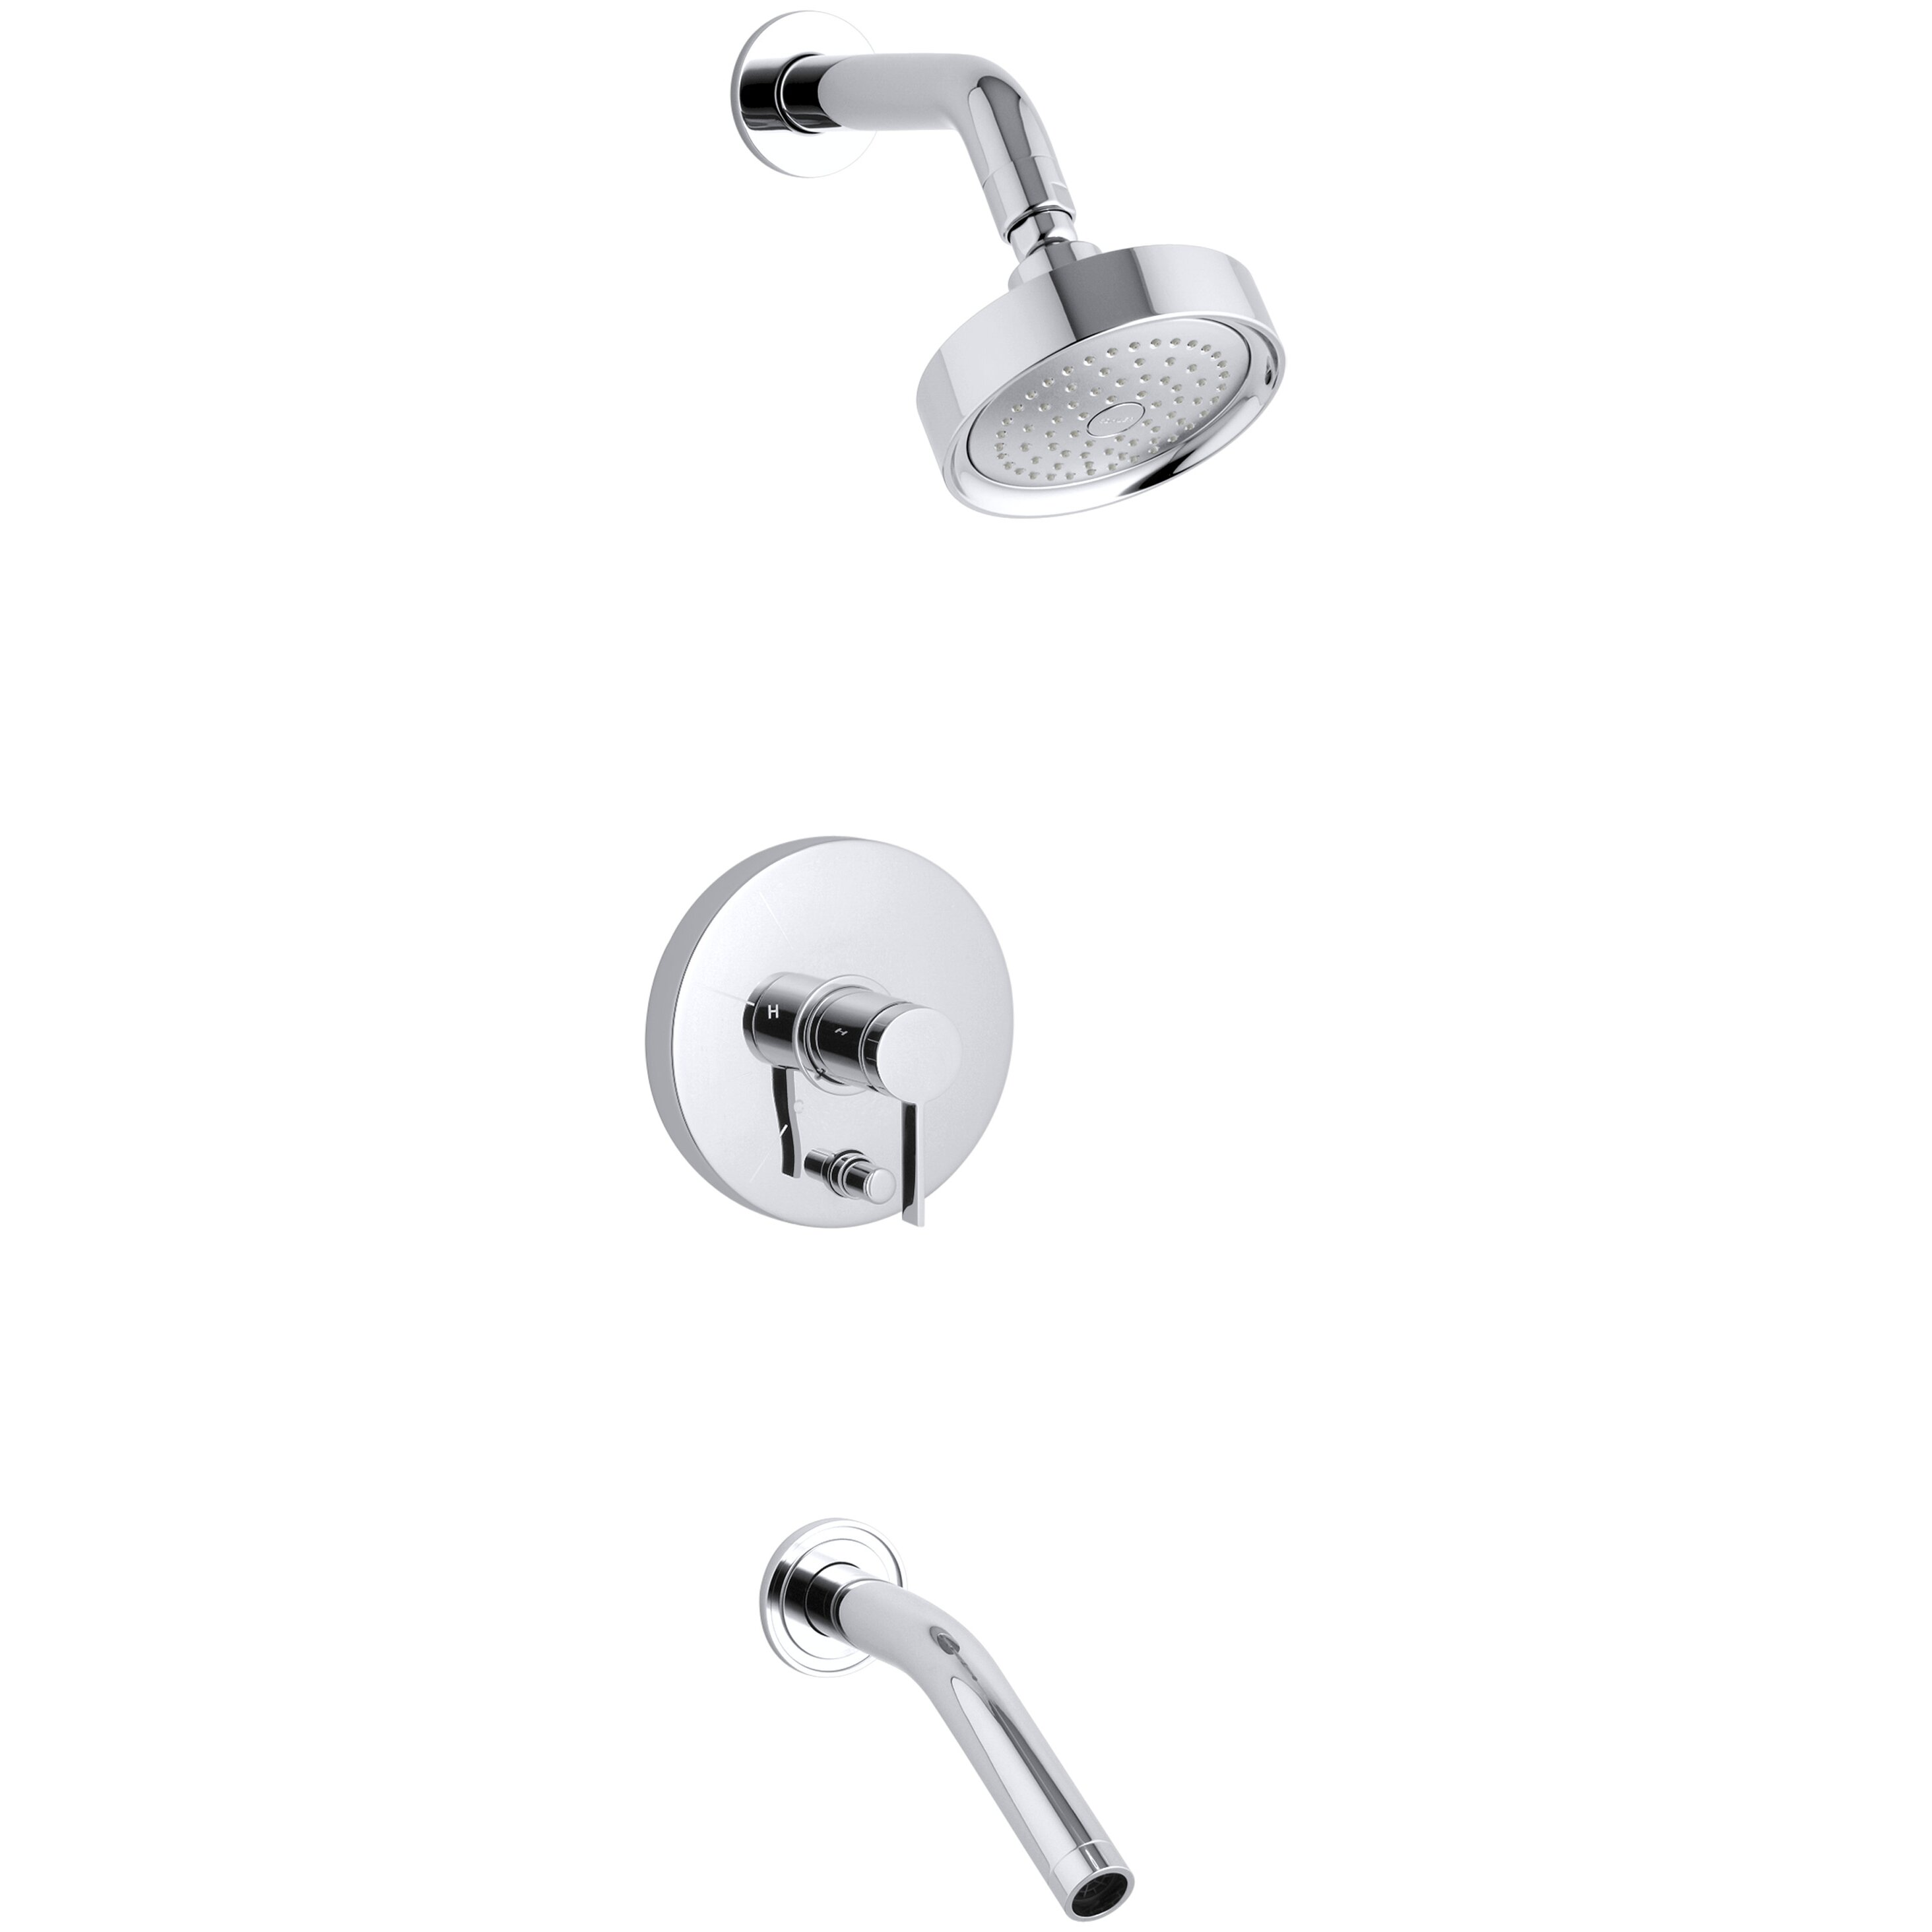 Kohler Shower Valve Parts Faucet Replacement Shower: Kohler Stillness Rite-Temp Pressure-Balancing Bath And